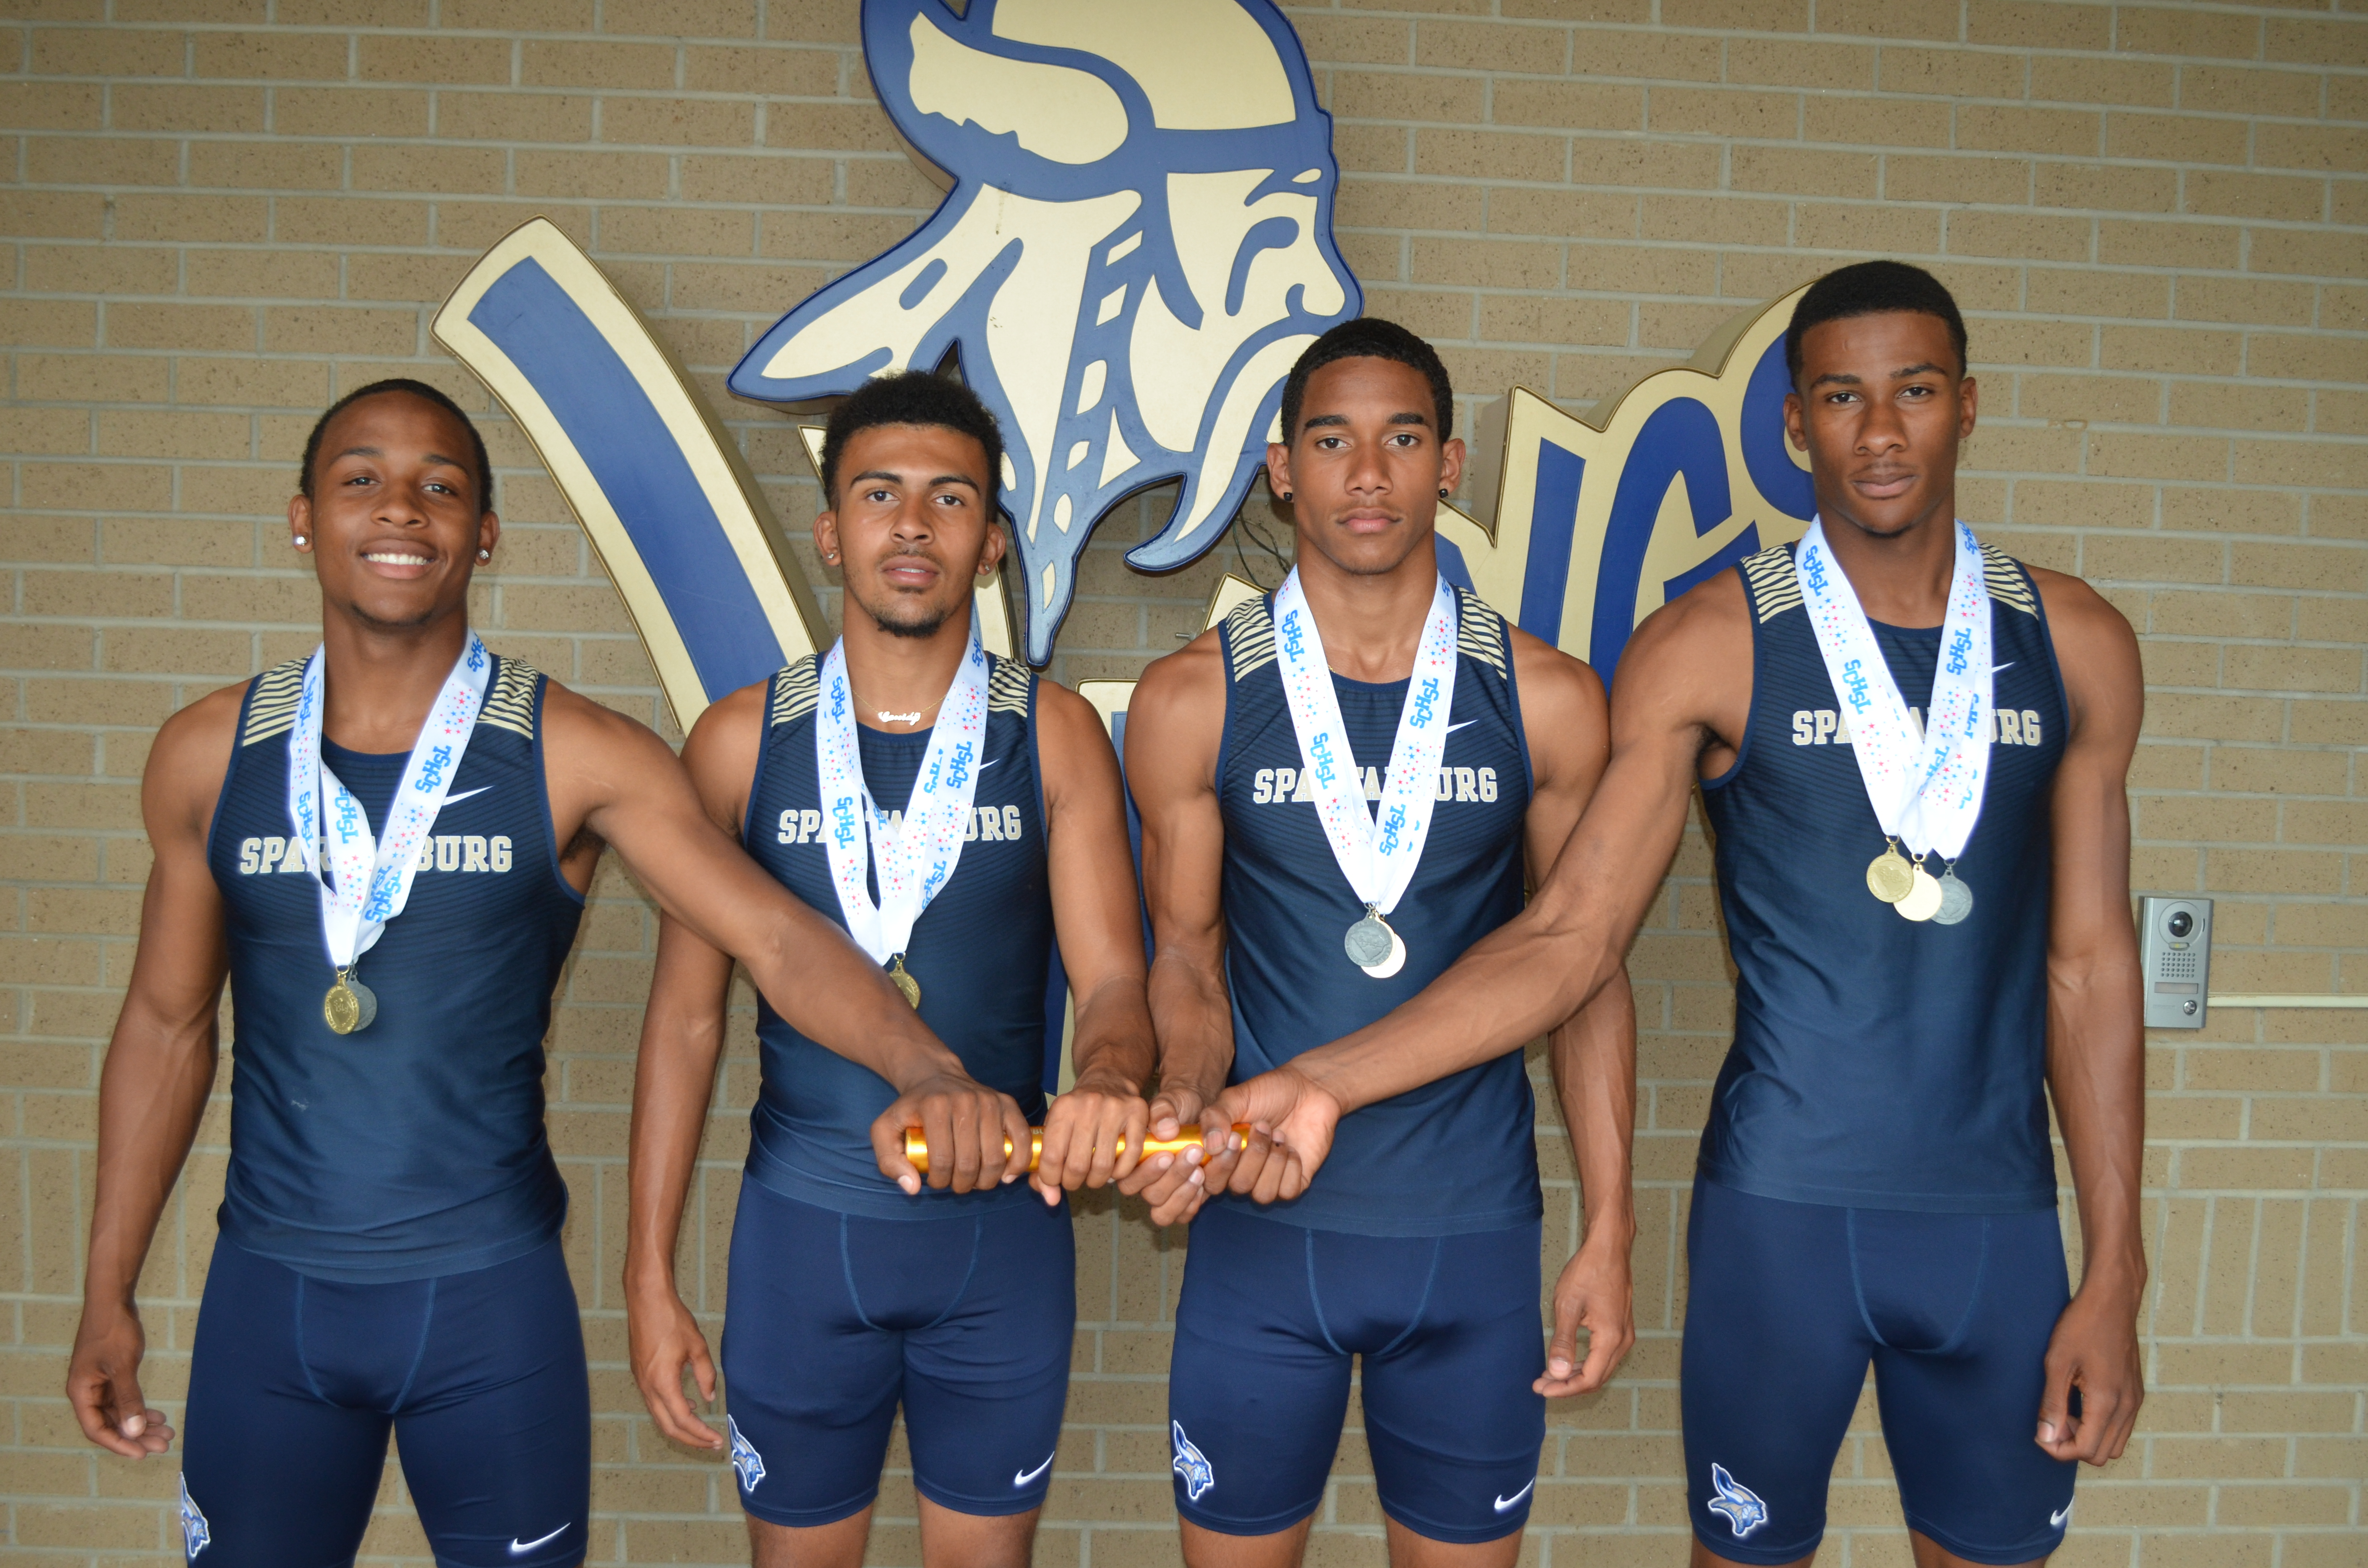 Congratulations to the 4×100 Relay State Champions